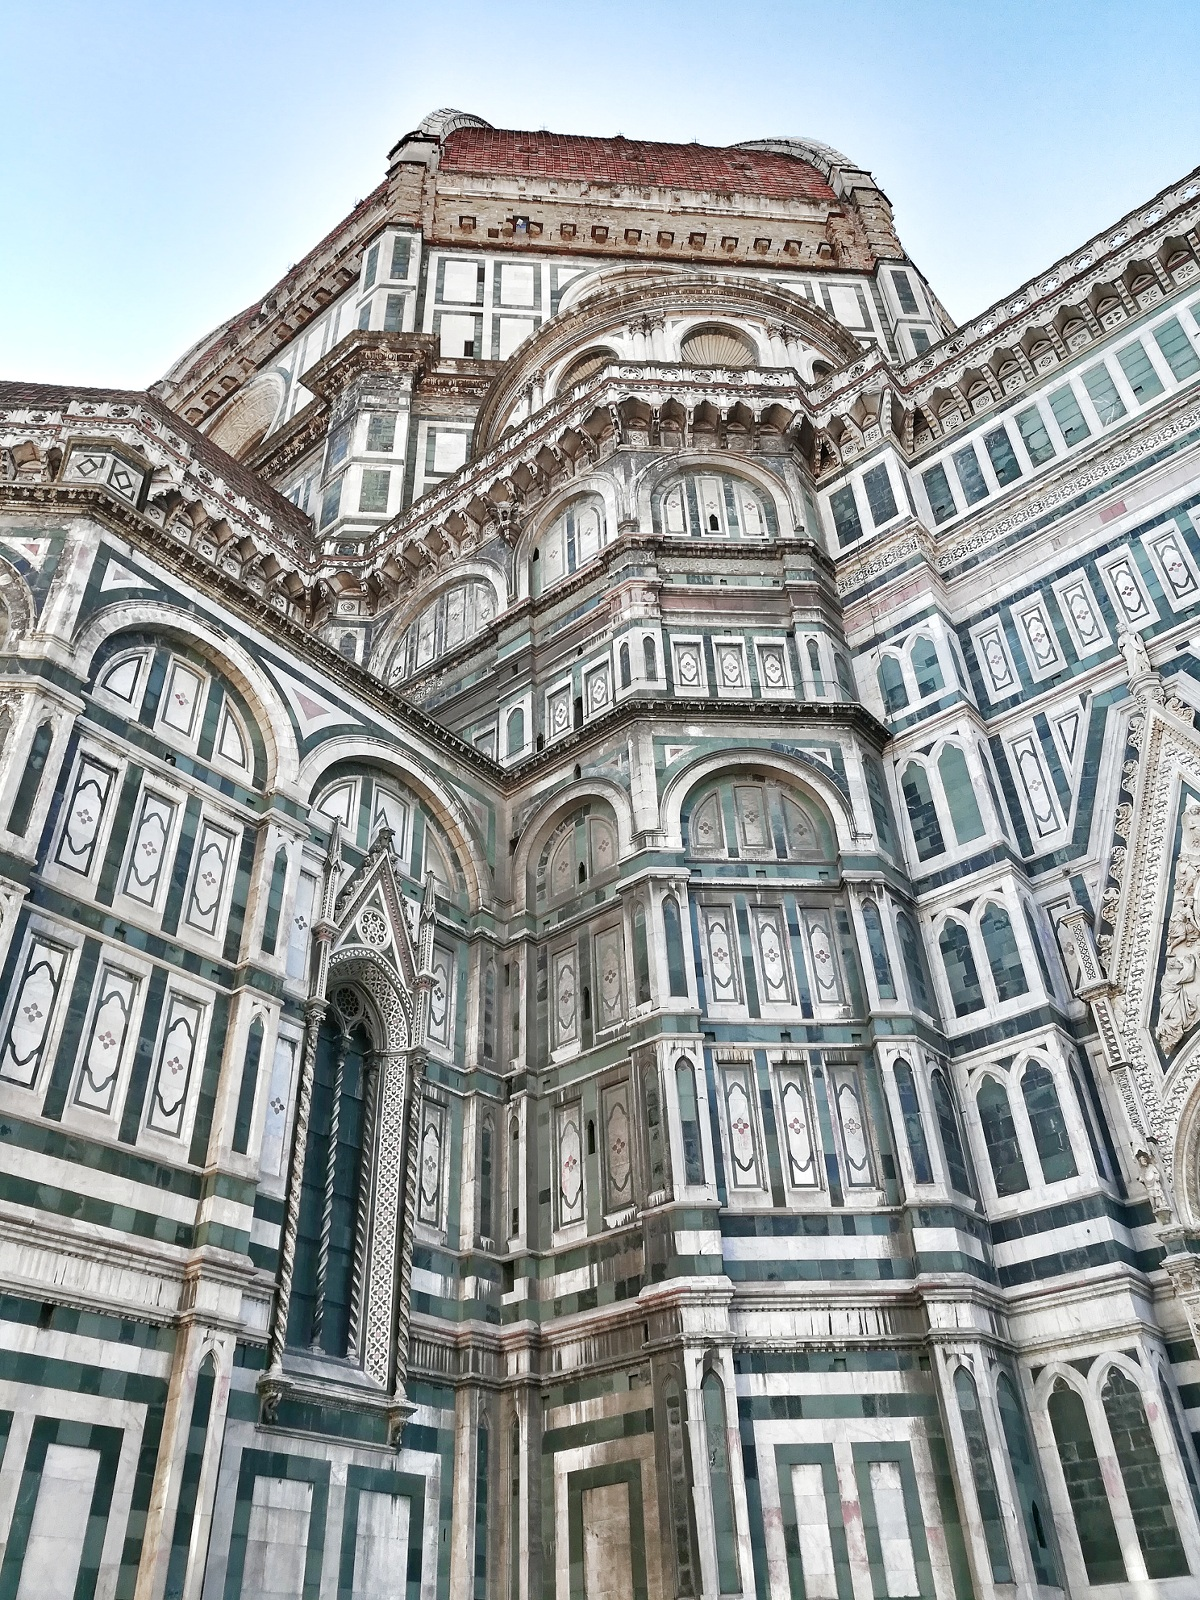 The Santa Maria del fiore church has the largest brick dome ever constructed, also known as The Duomo